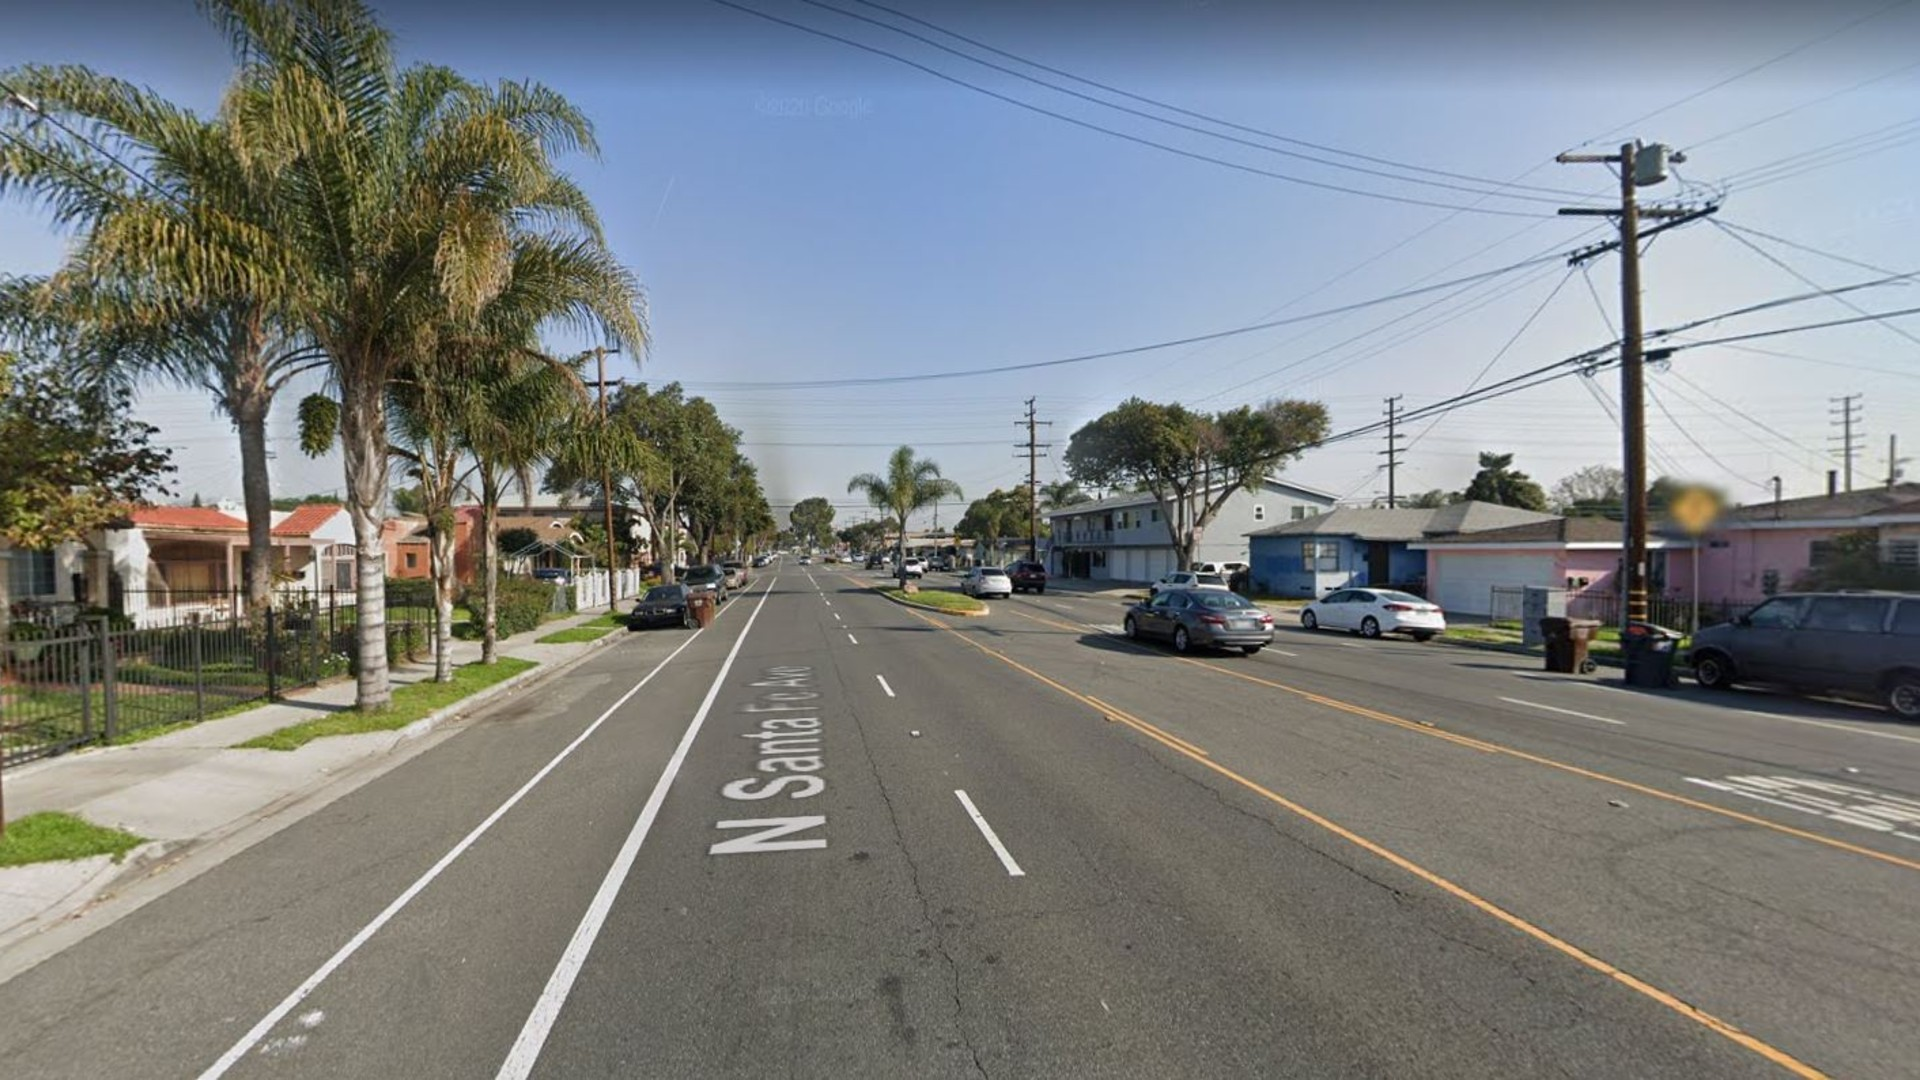 The 600 block of North Santa Fe Avenue in Compton, as viewed in a Google Street view image.